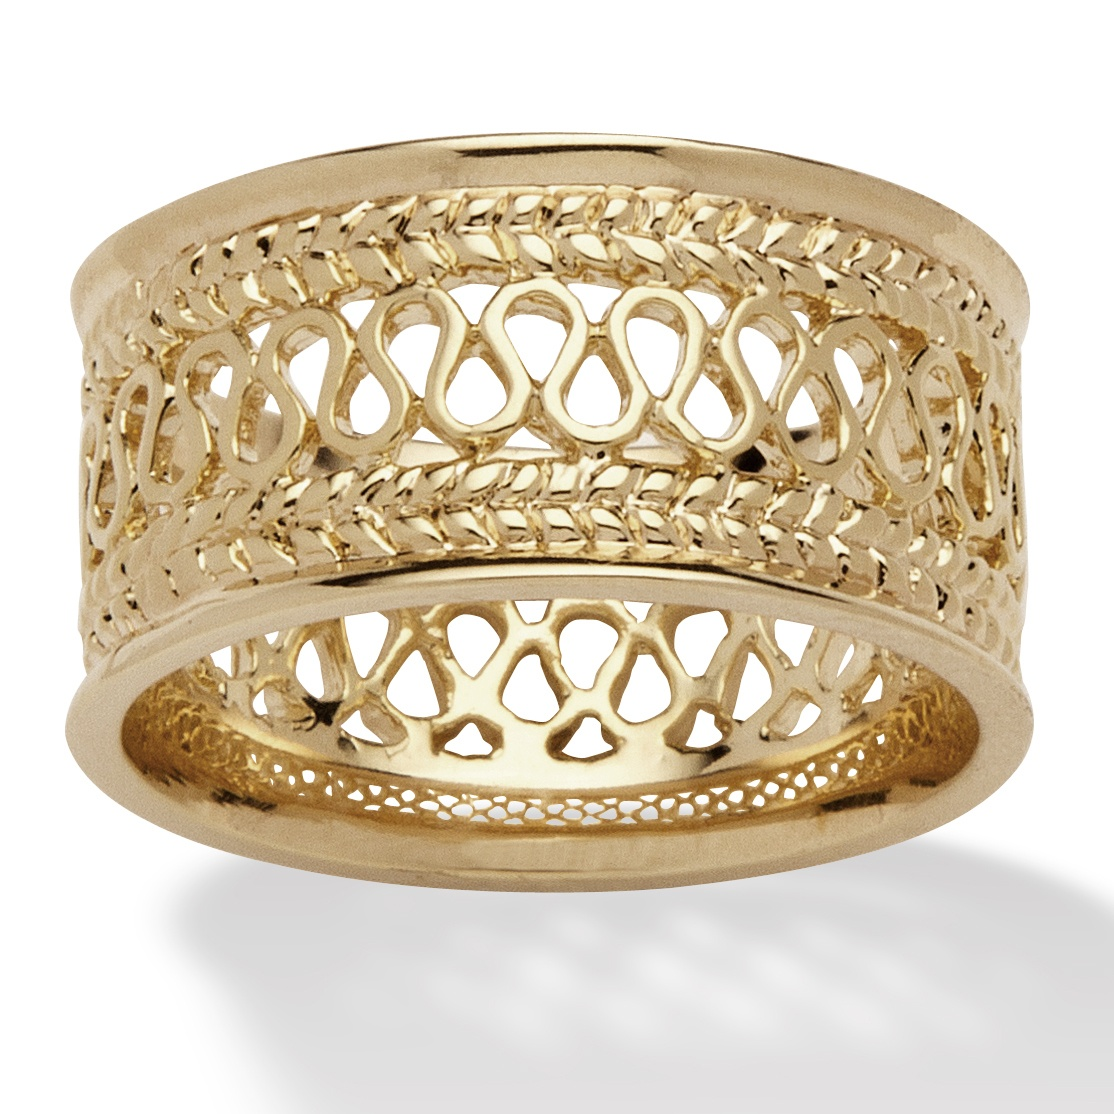 Open Weave Decorative Ring In 14k Gold Plated At Palmbeach